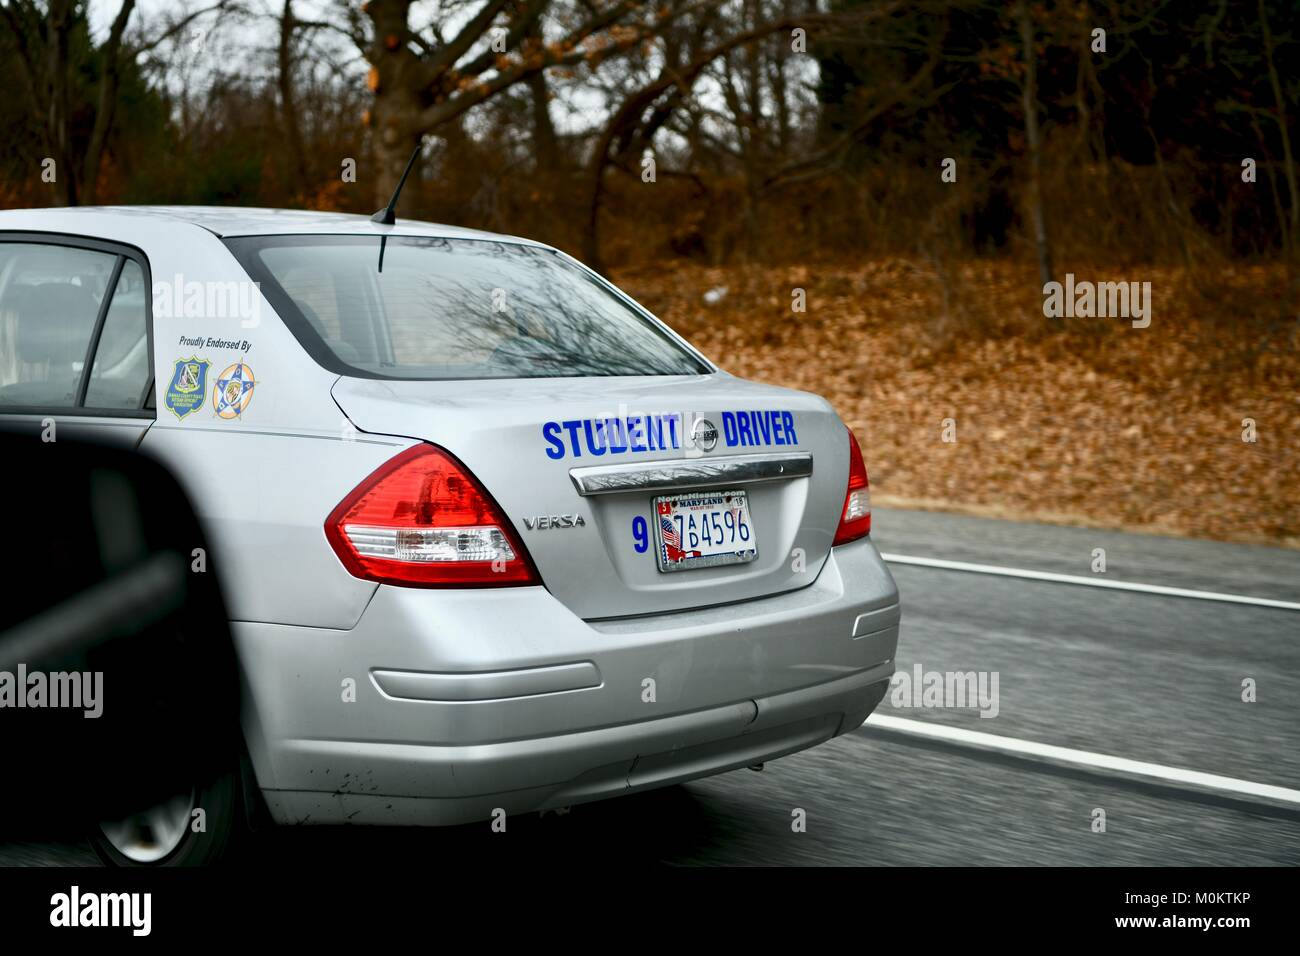 Student driver car on the highway stock image